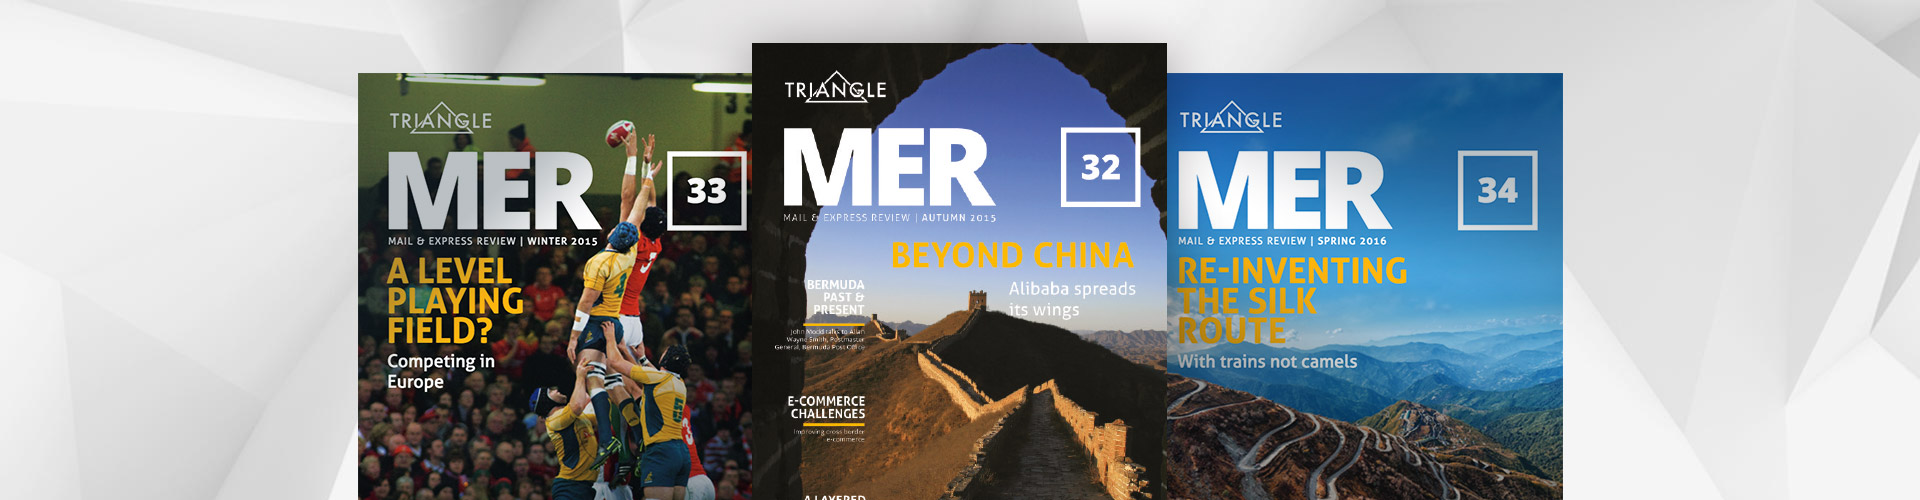 Header image of Triangle offers new mobile experience for MER Magazine readers